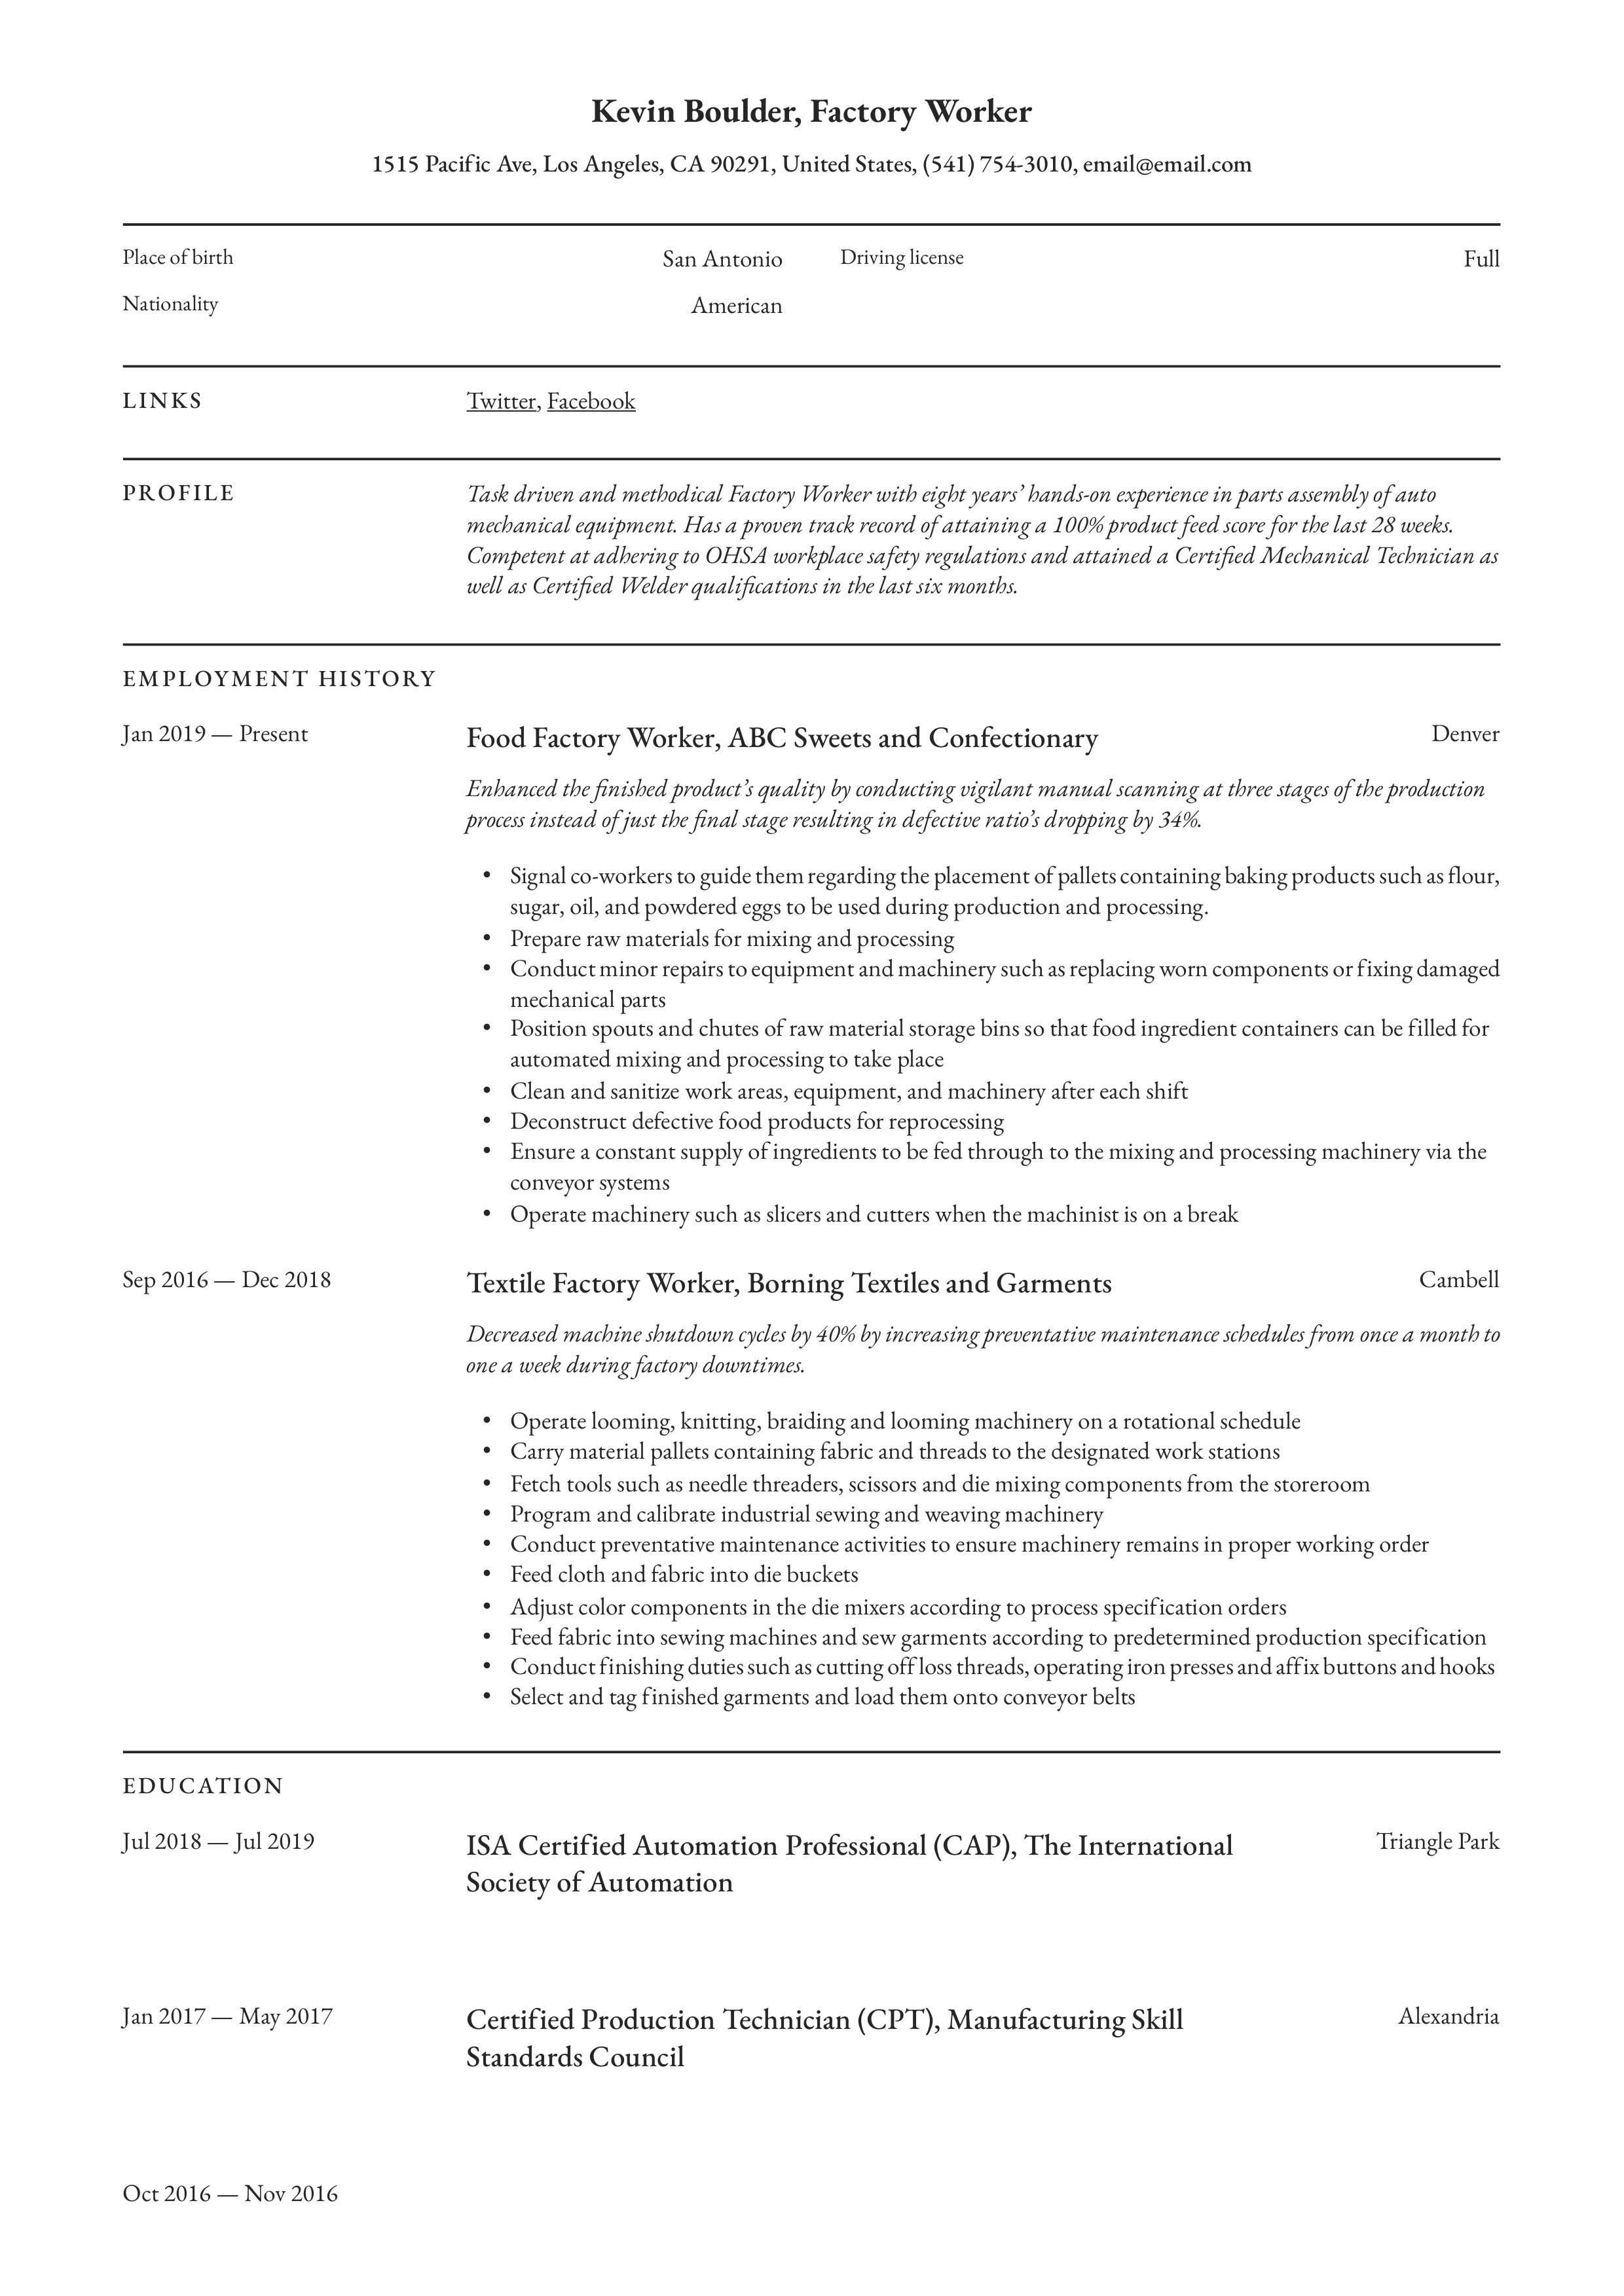 Resume Examples For Production Worker Louiesportsmouth Com Resume Examples Professional Resume Examples Civil Engineer Resume